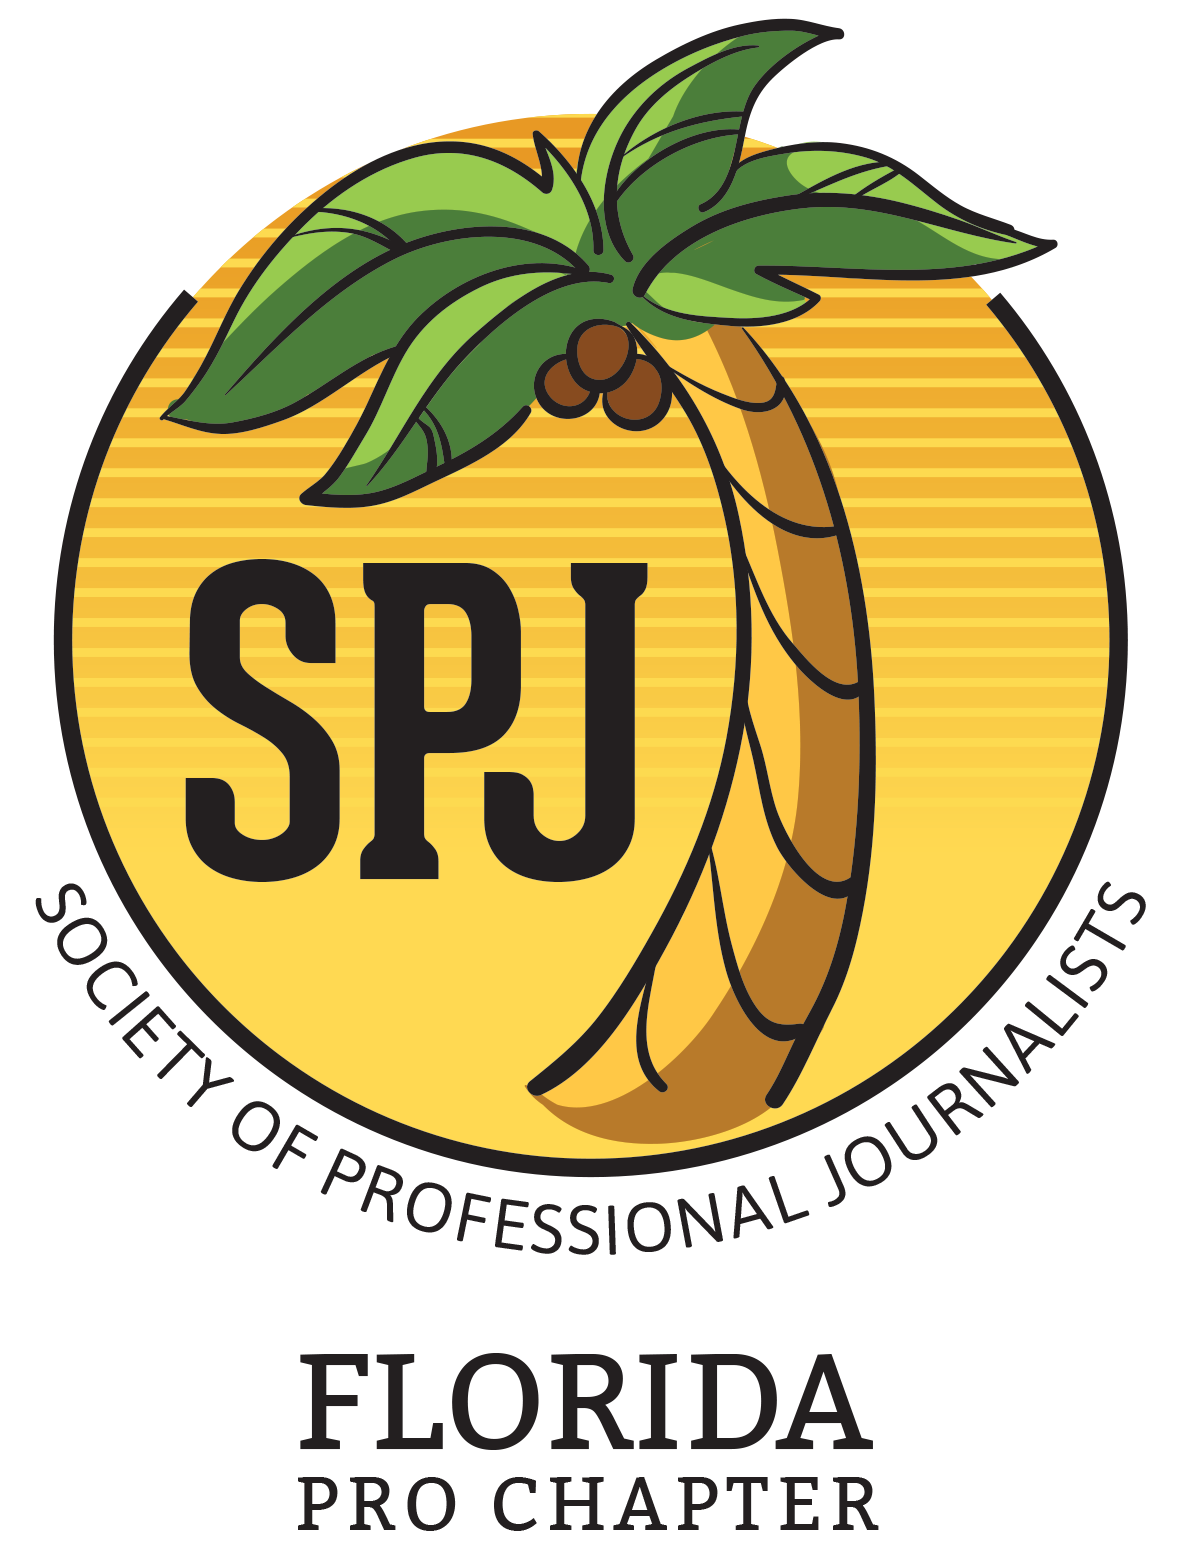 Join Us: May/June Board Meeting - SPJ Florida Pro